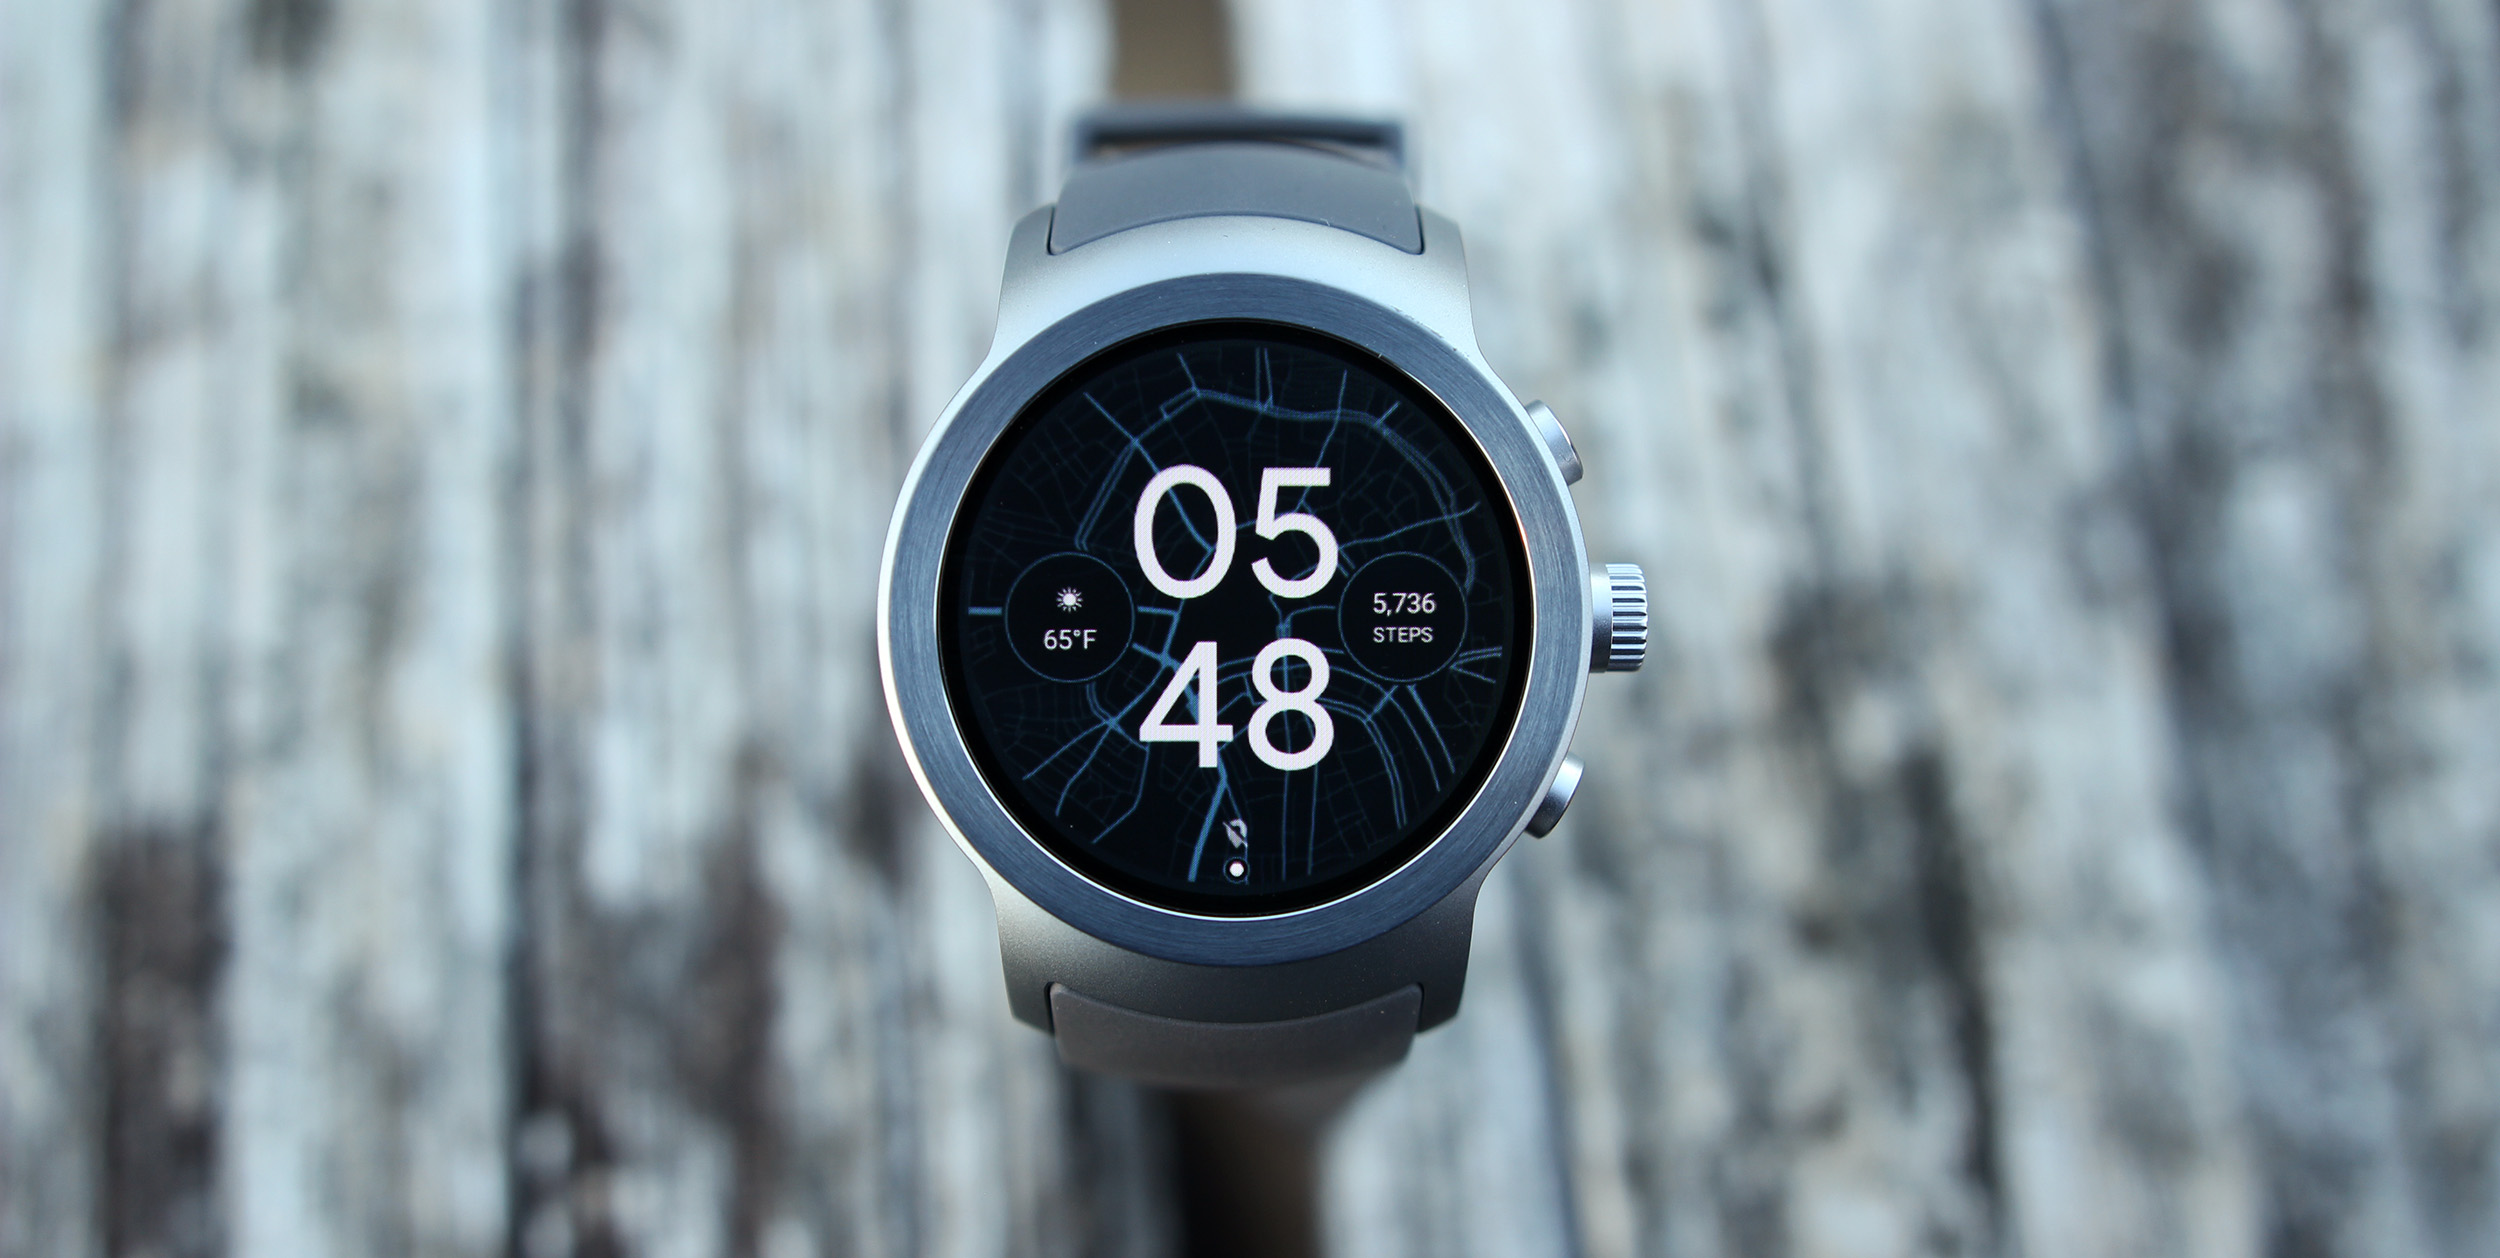 'LG Watch W7' will allegedly debut alongside LG V40 ThinQ on October 3rd